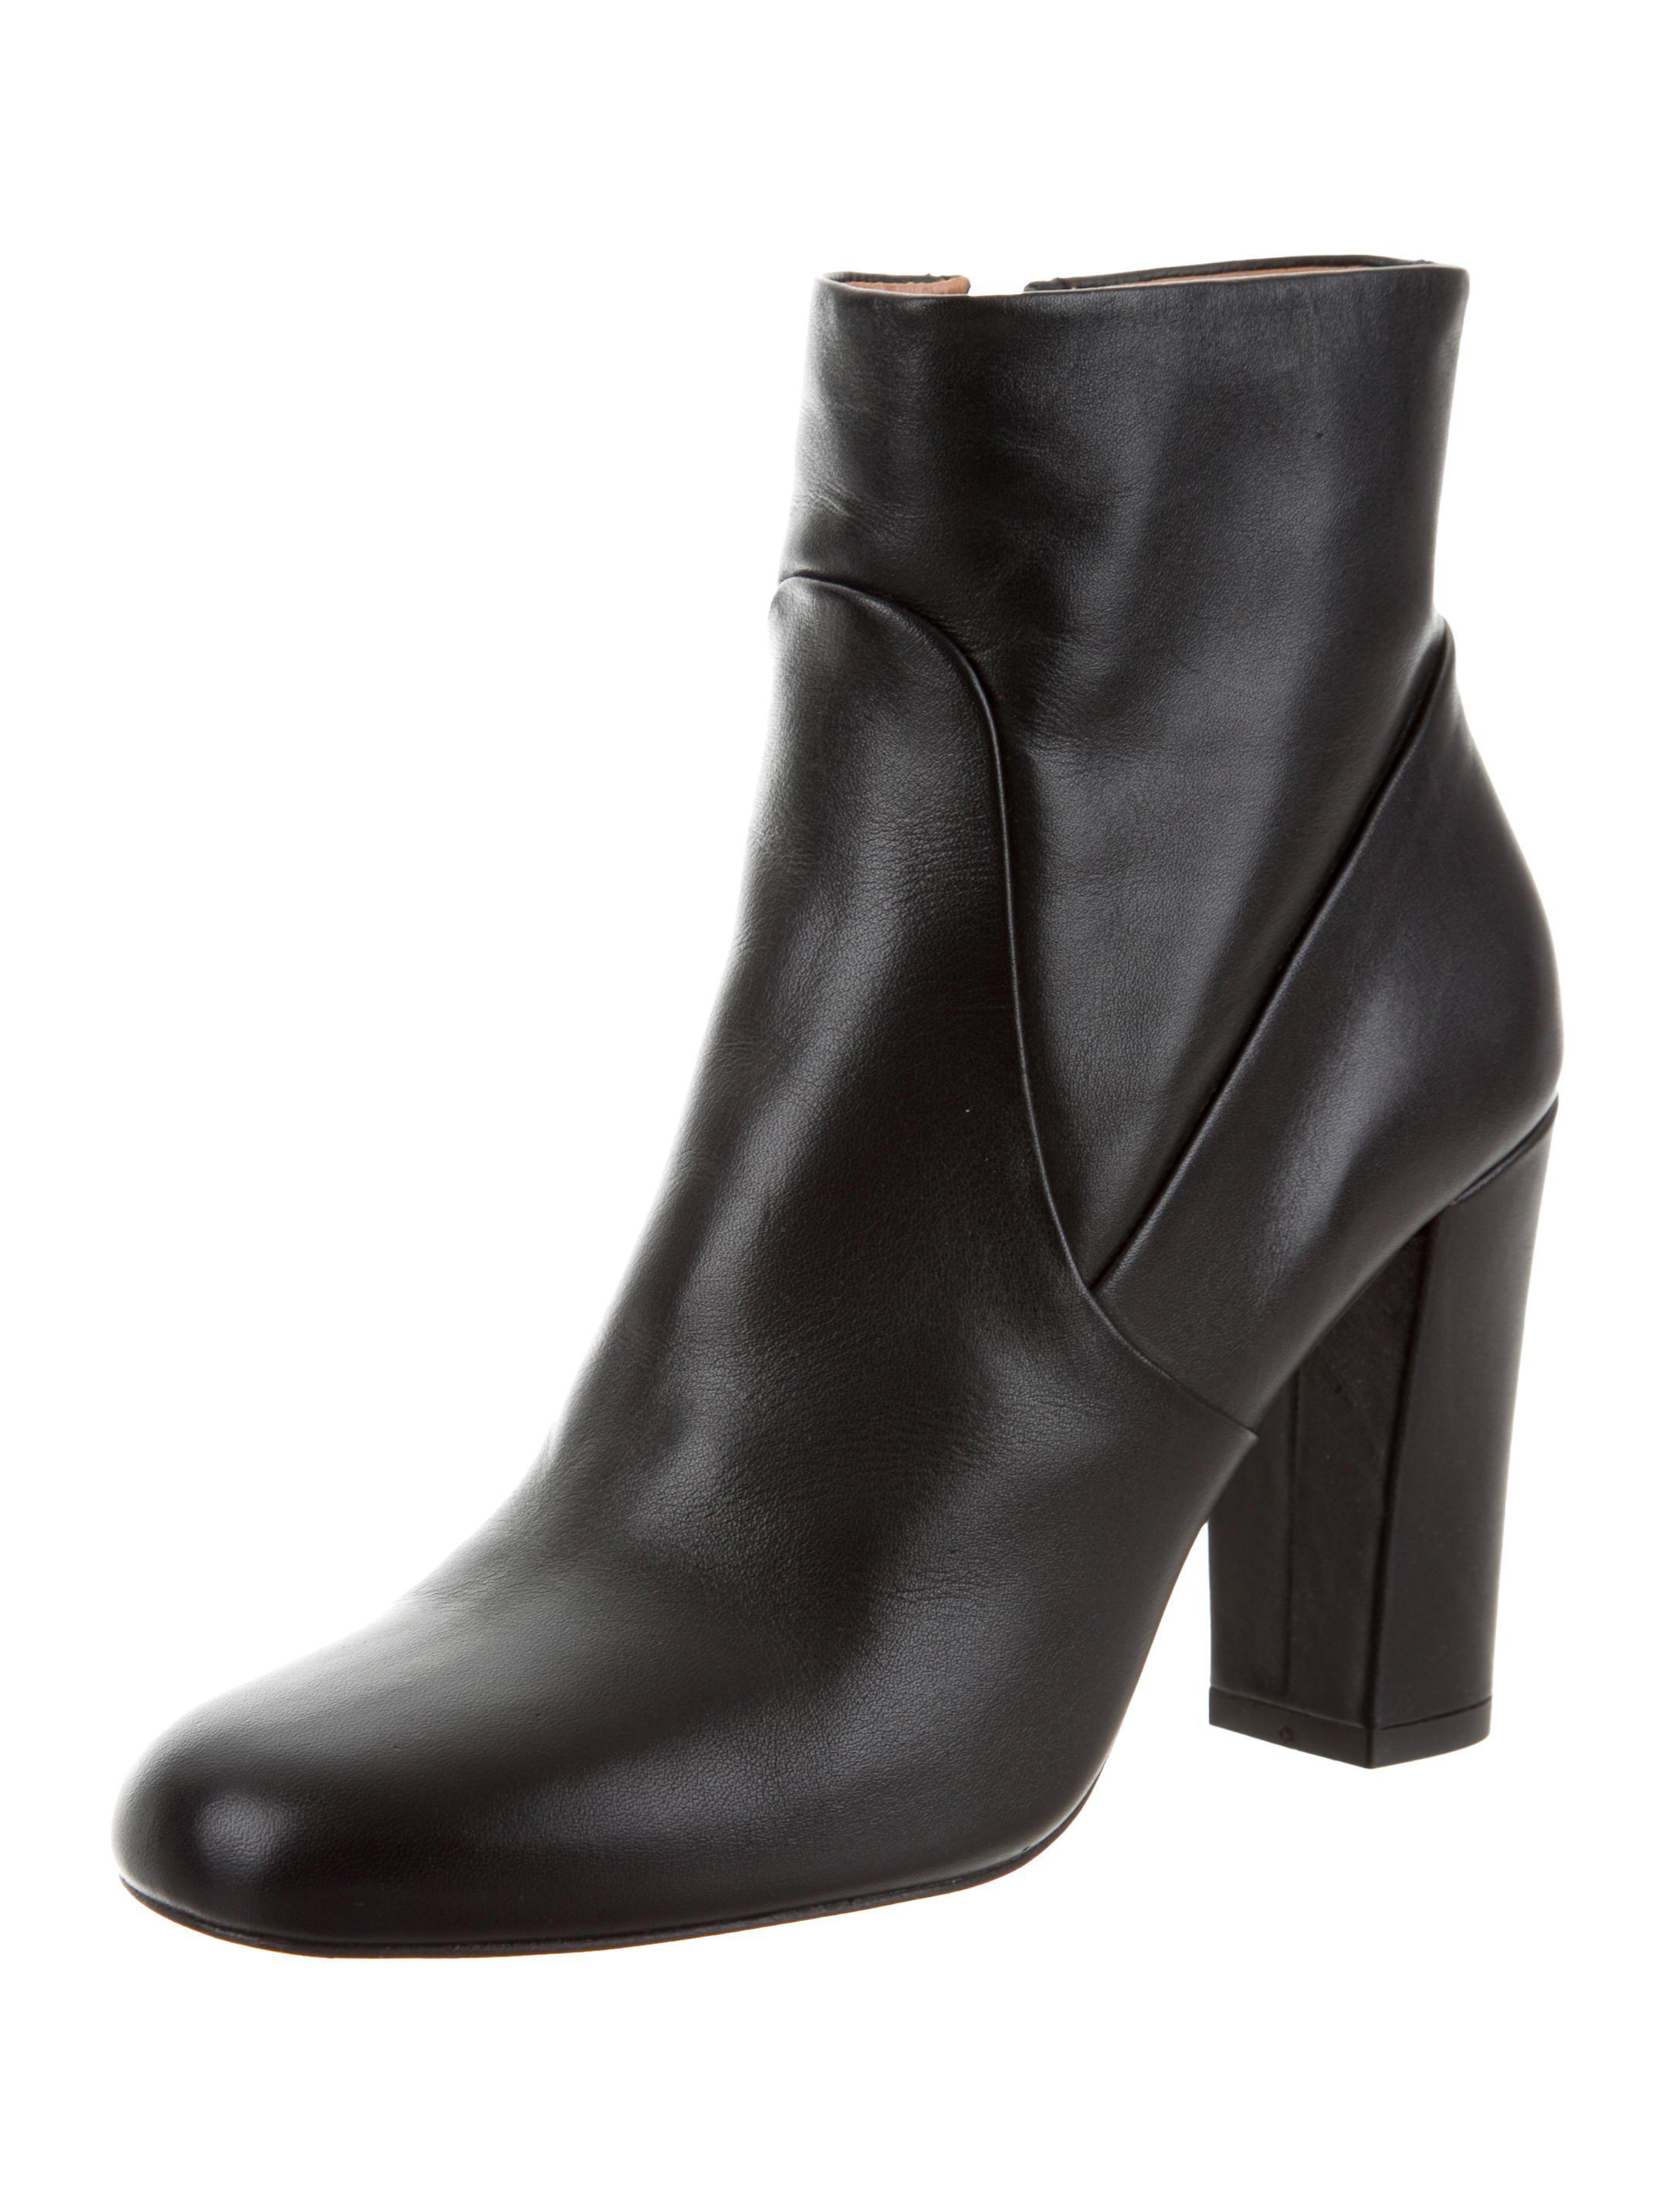 Iro Leather Ankle Boots w/ Tags official site online wiki cheap 100% authentic cheap footlocker sale the cheapest 5g7Qg1BDbH